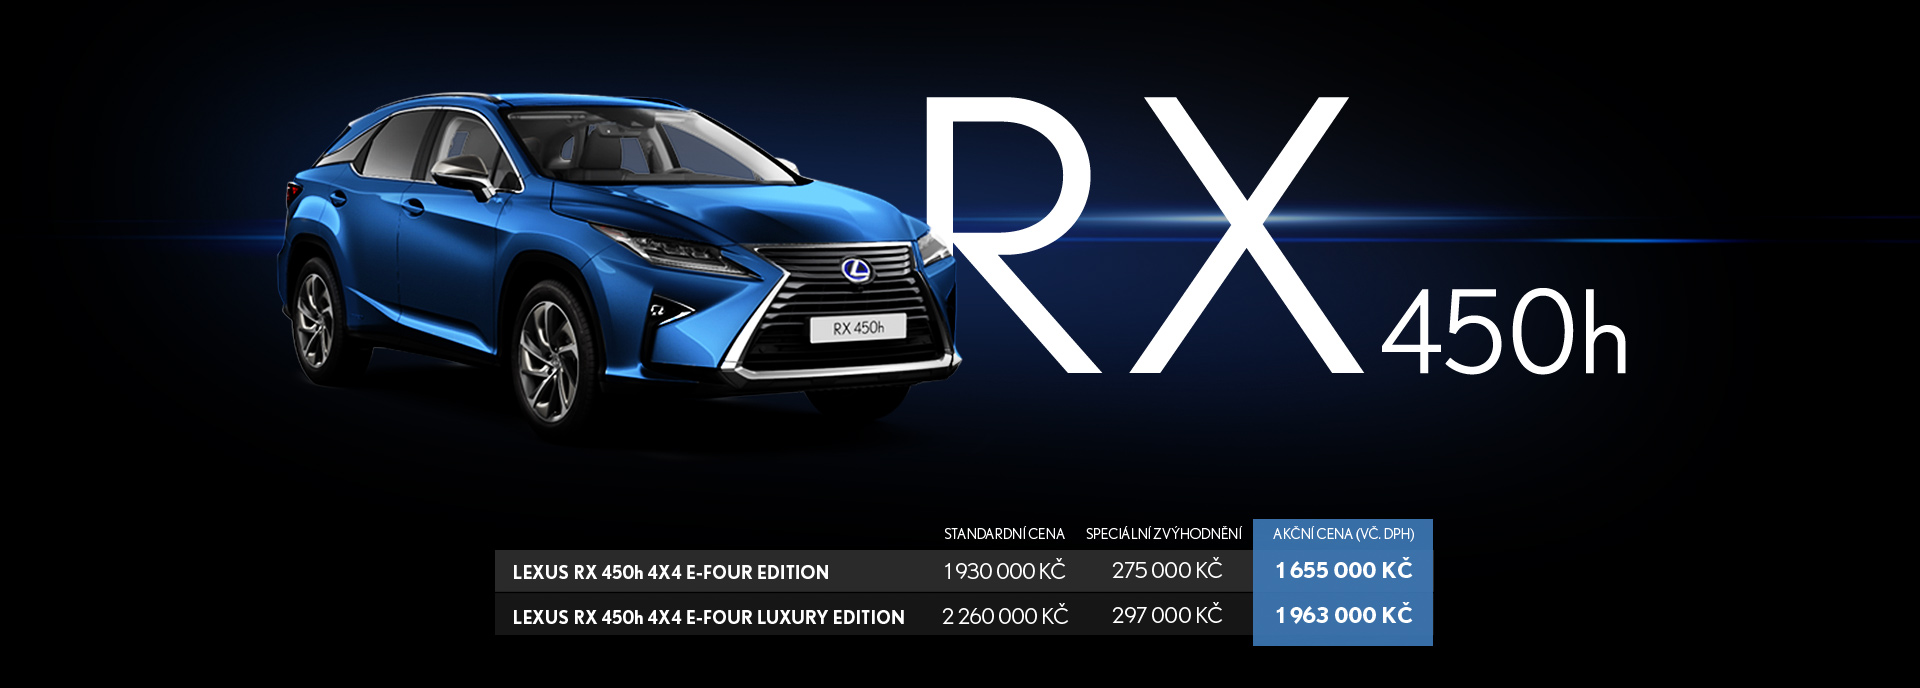 RX 450h Banner Image